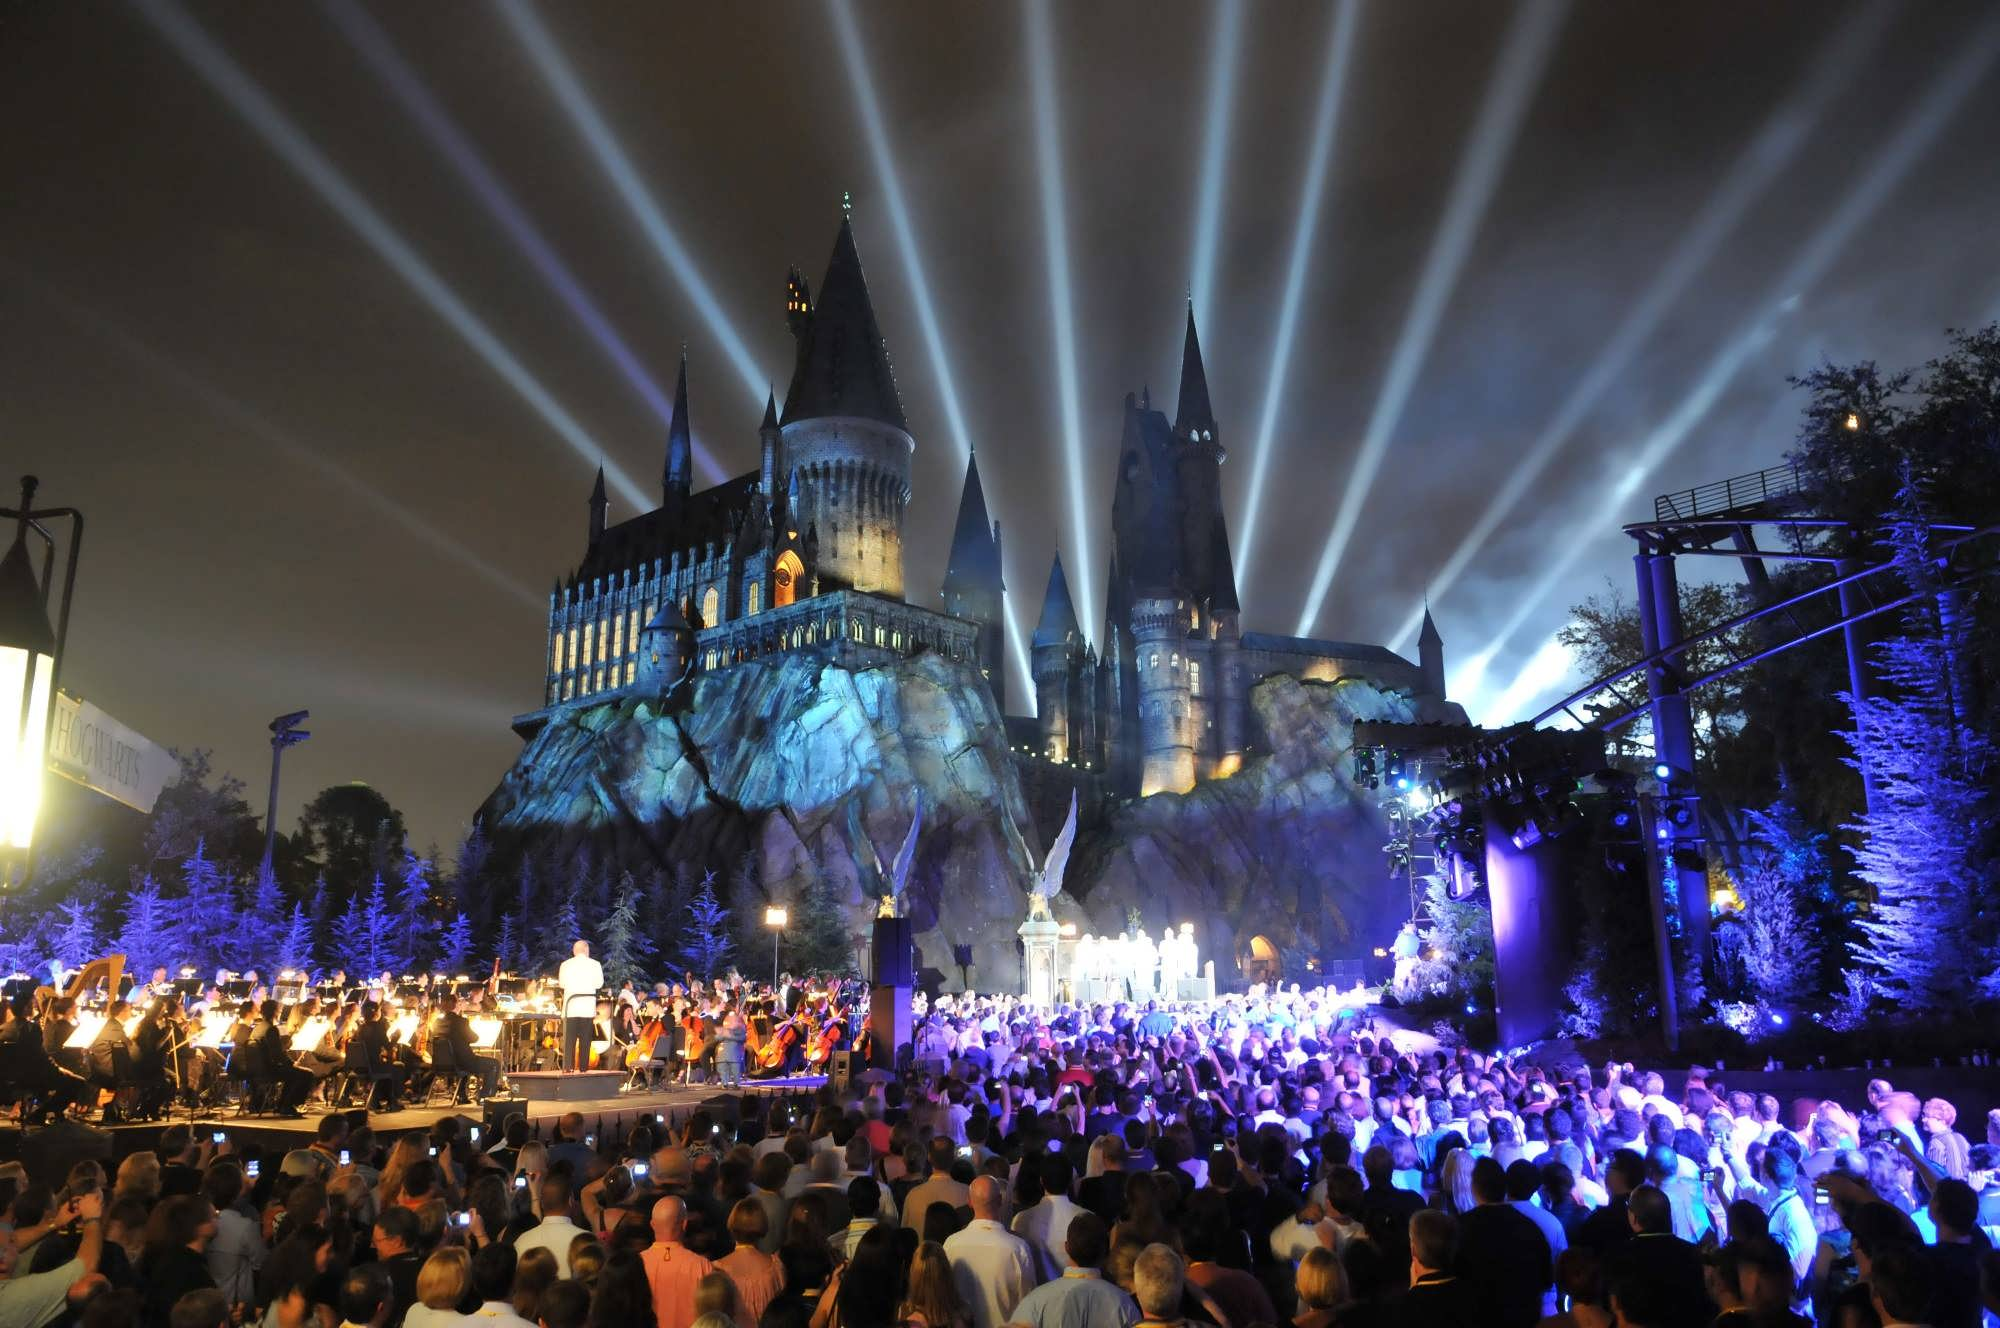 Mi experiencia en Wizarding World of Harry Potter